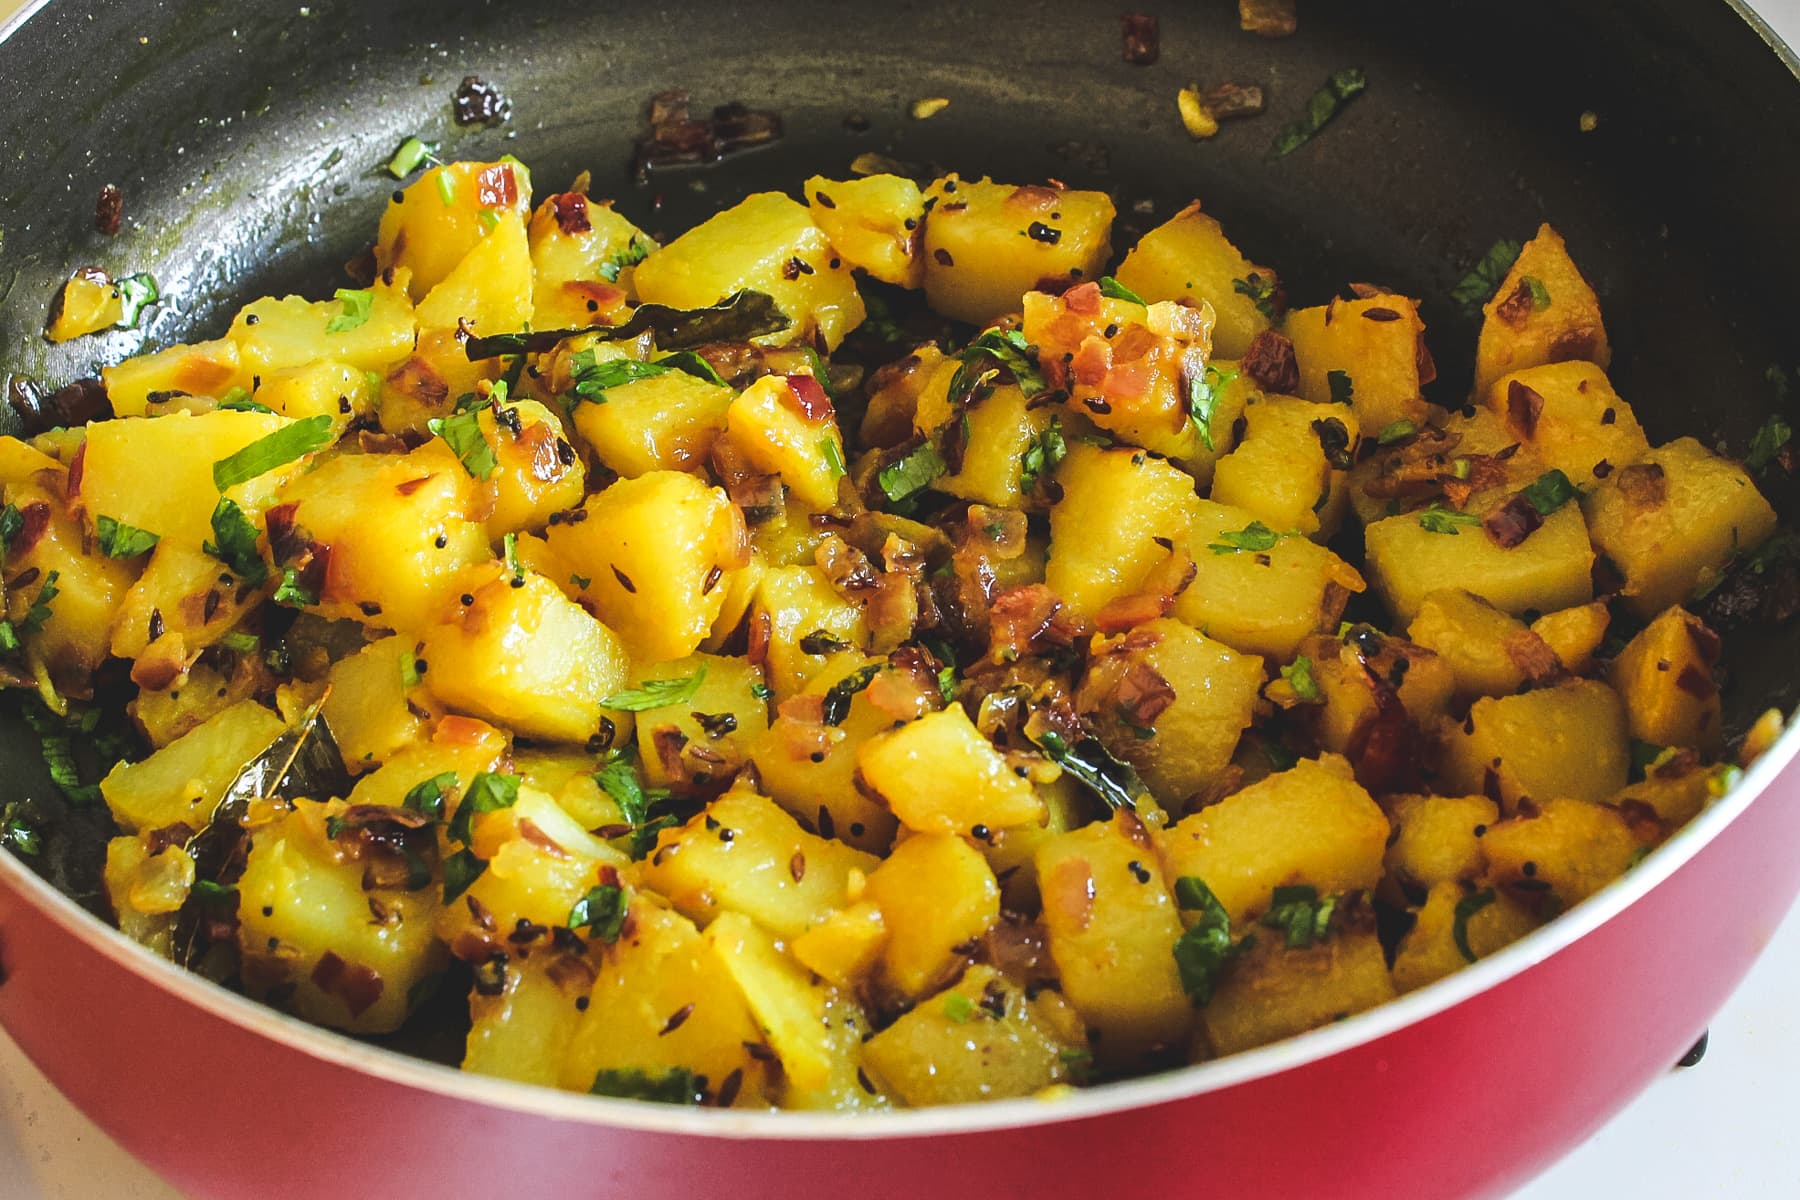 Image of potato bhaji in the pan ready to serve.